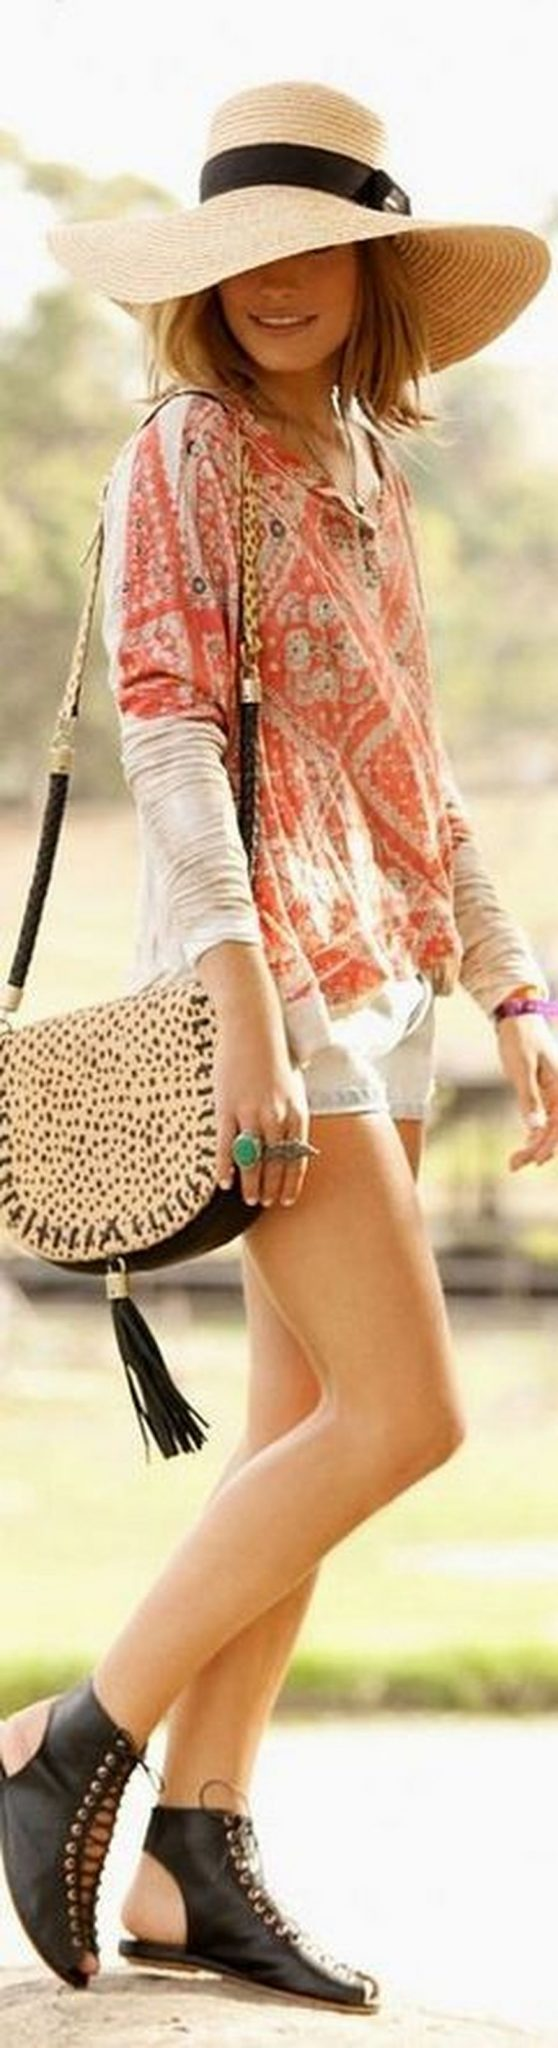 Boho dress for holiday and vacation outfits 43